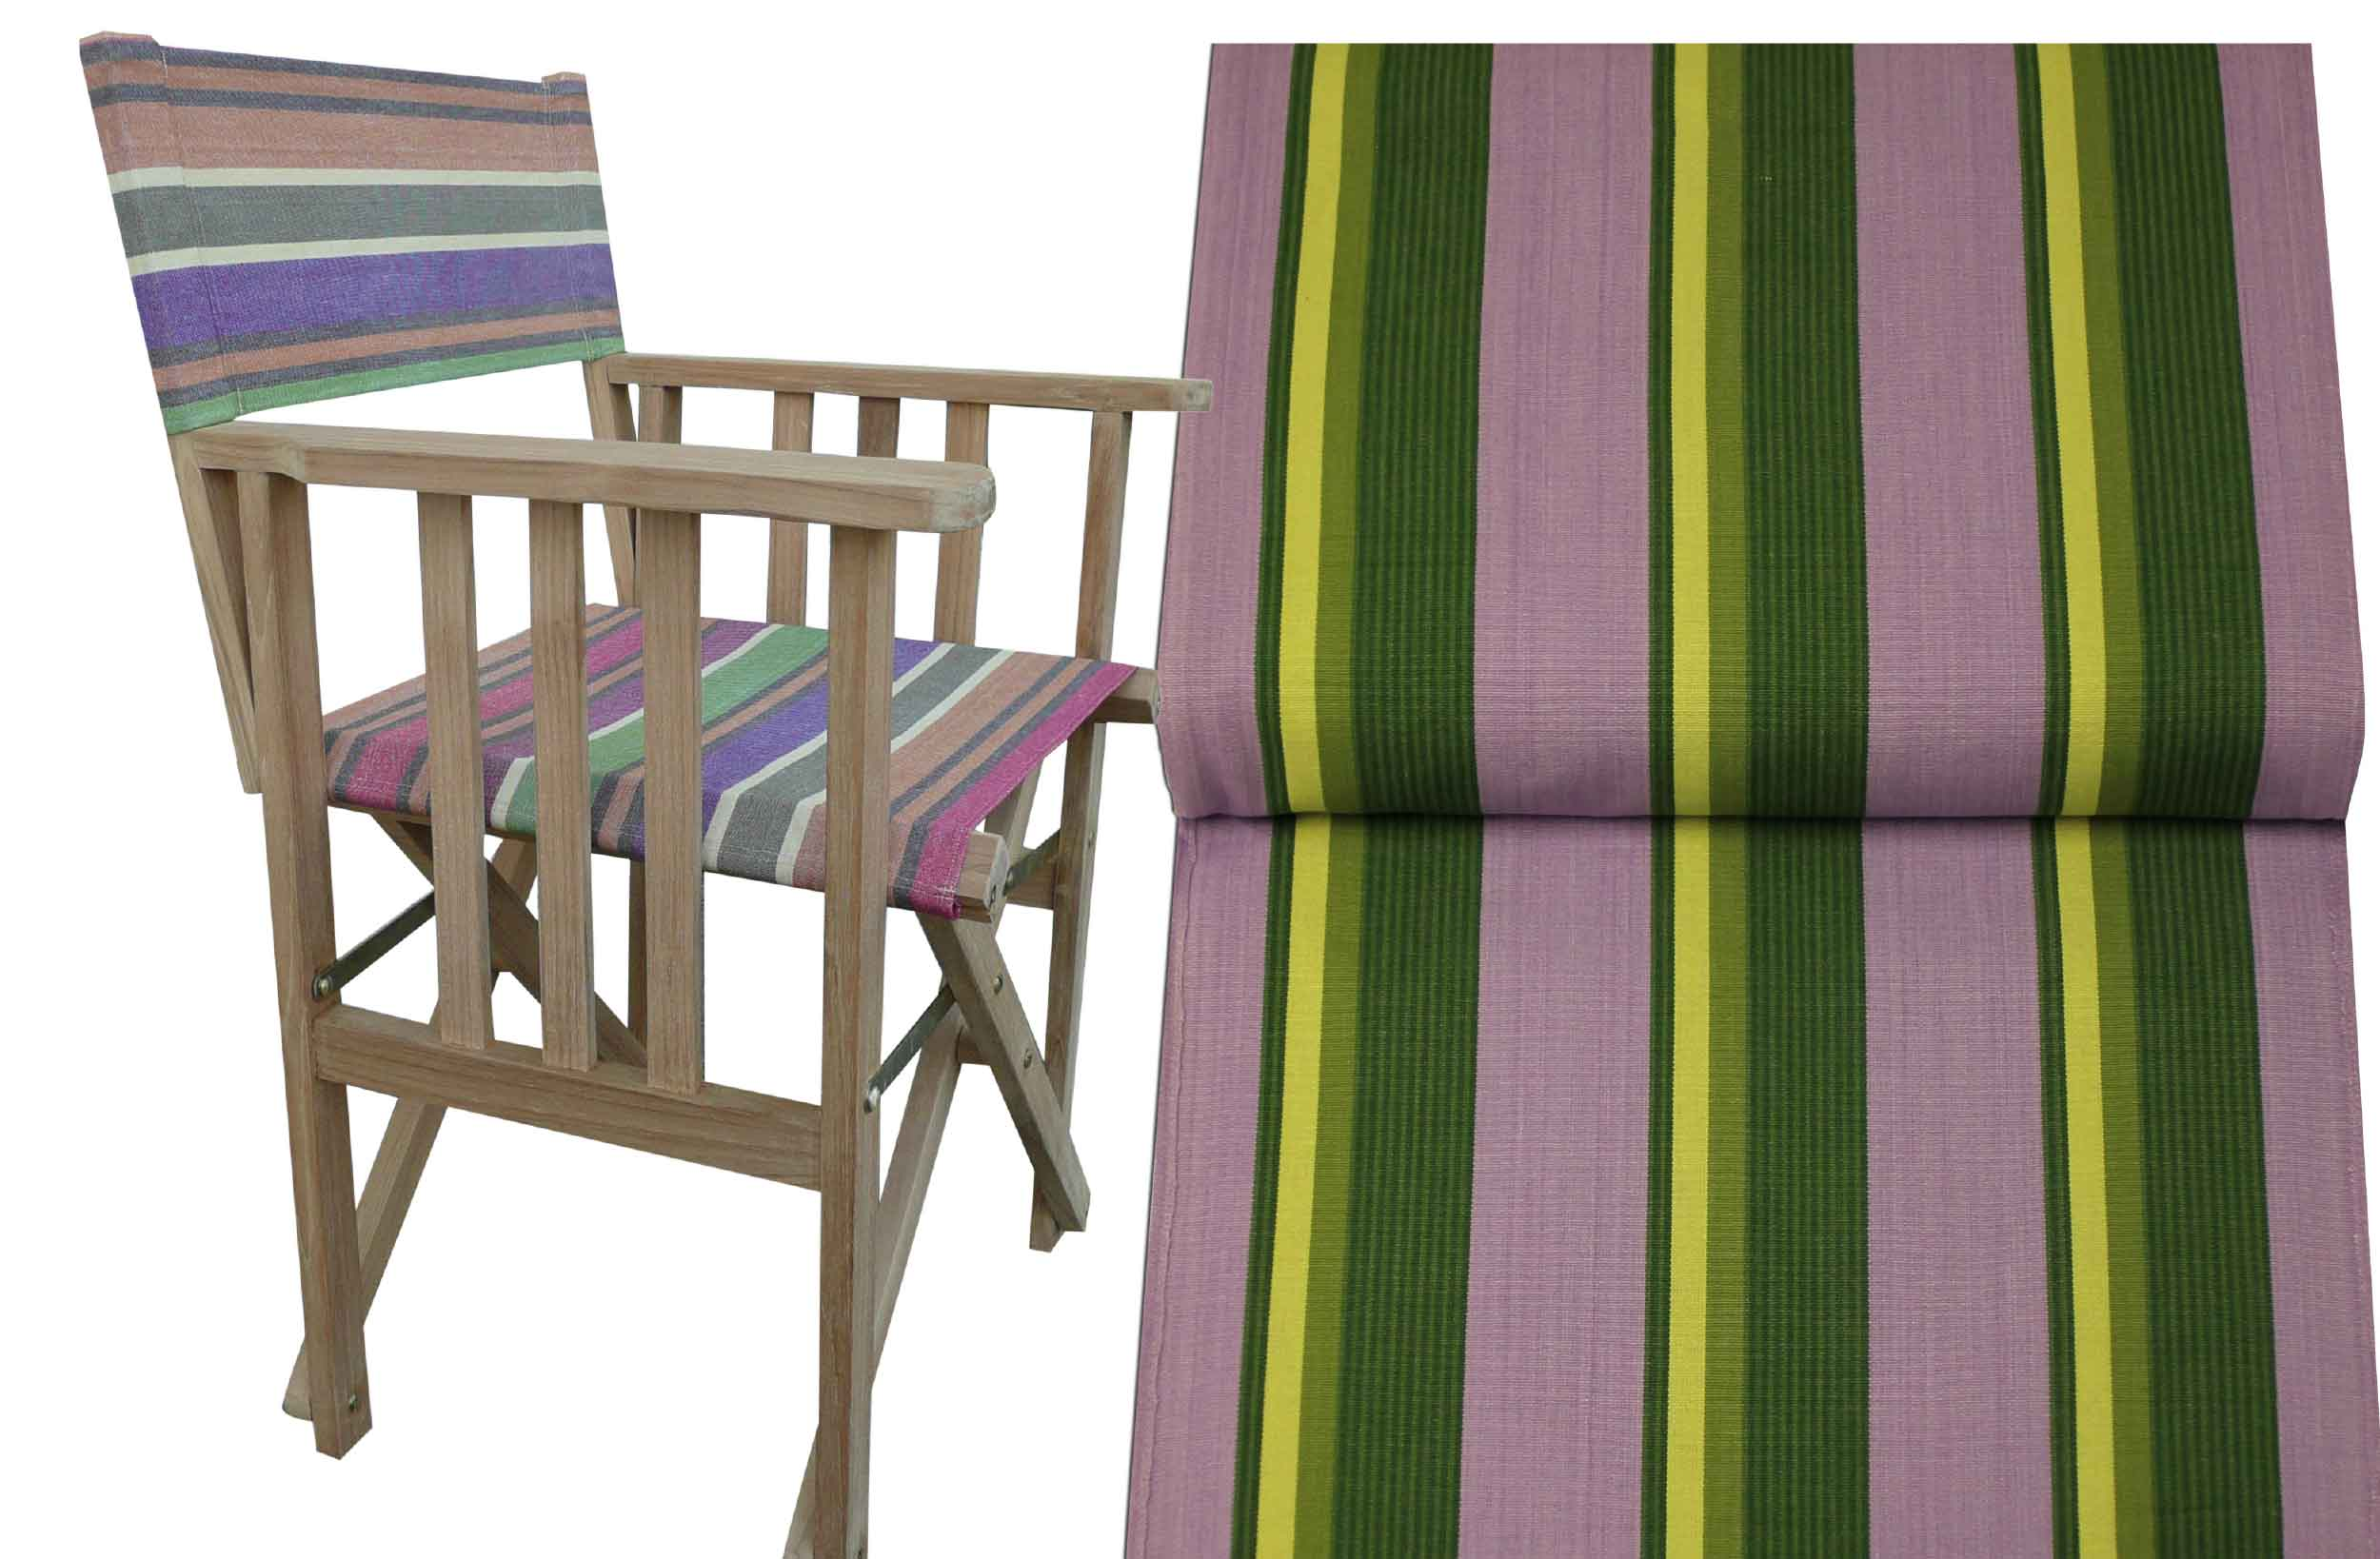 Teak Directors Chair - Hip Hop Stripe